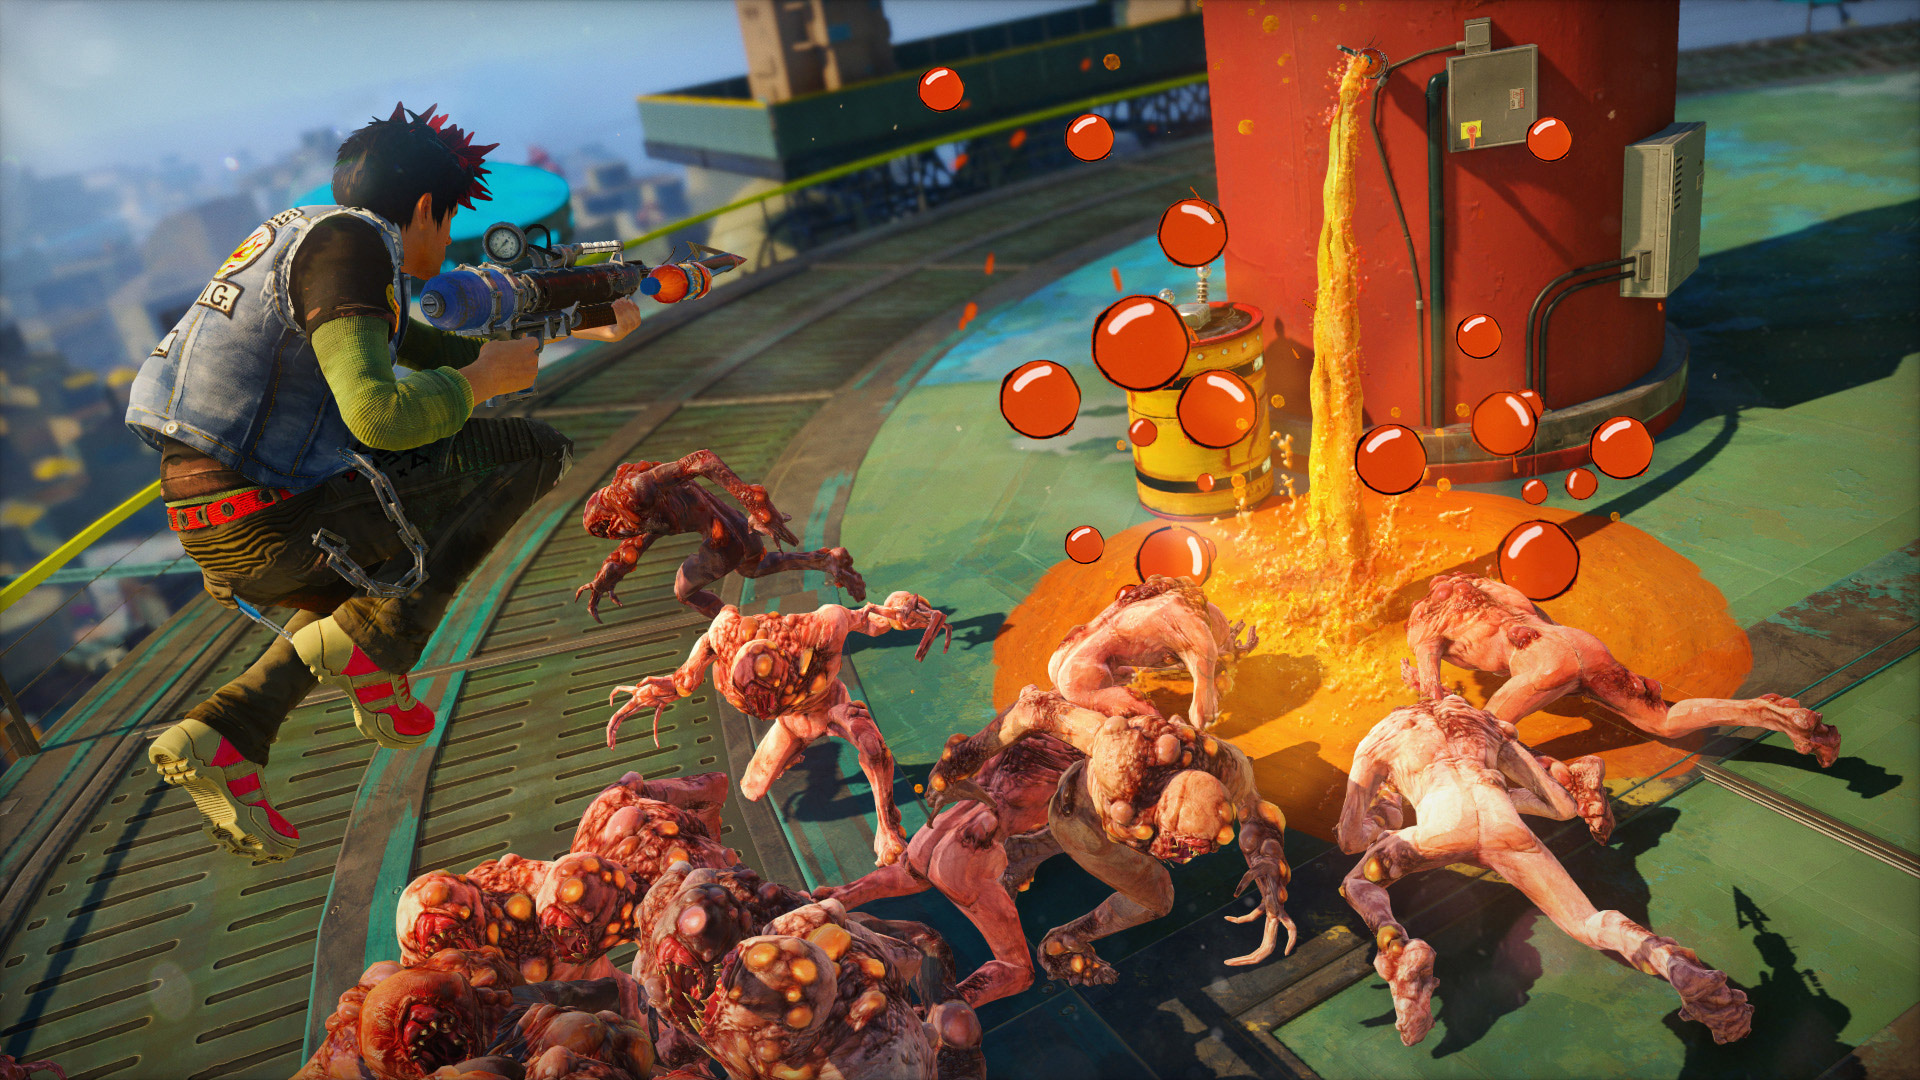 Staying in the air and firing at the same time wasn't as easy as we'd have liked in <em>Sunset Overdrive.</em>